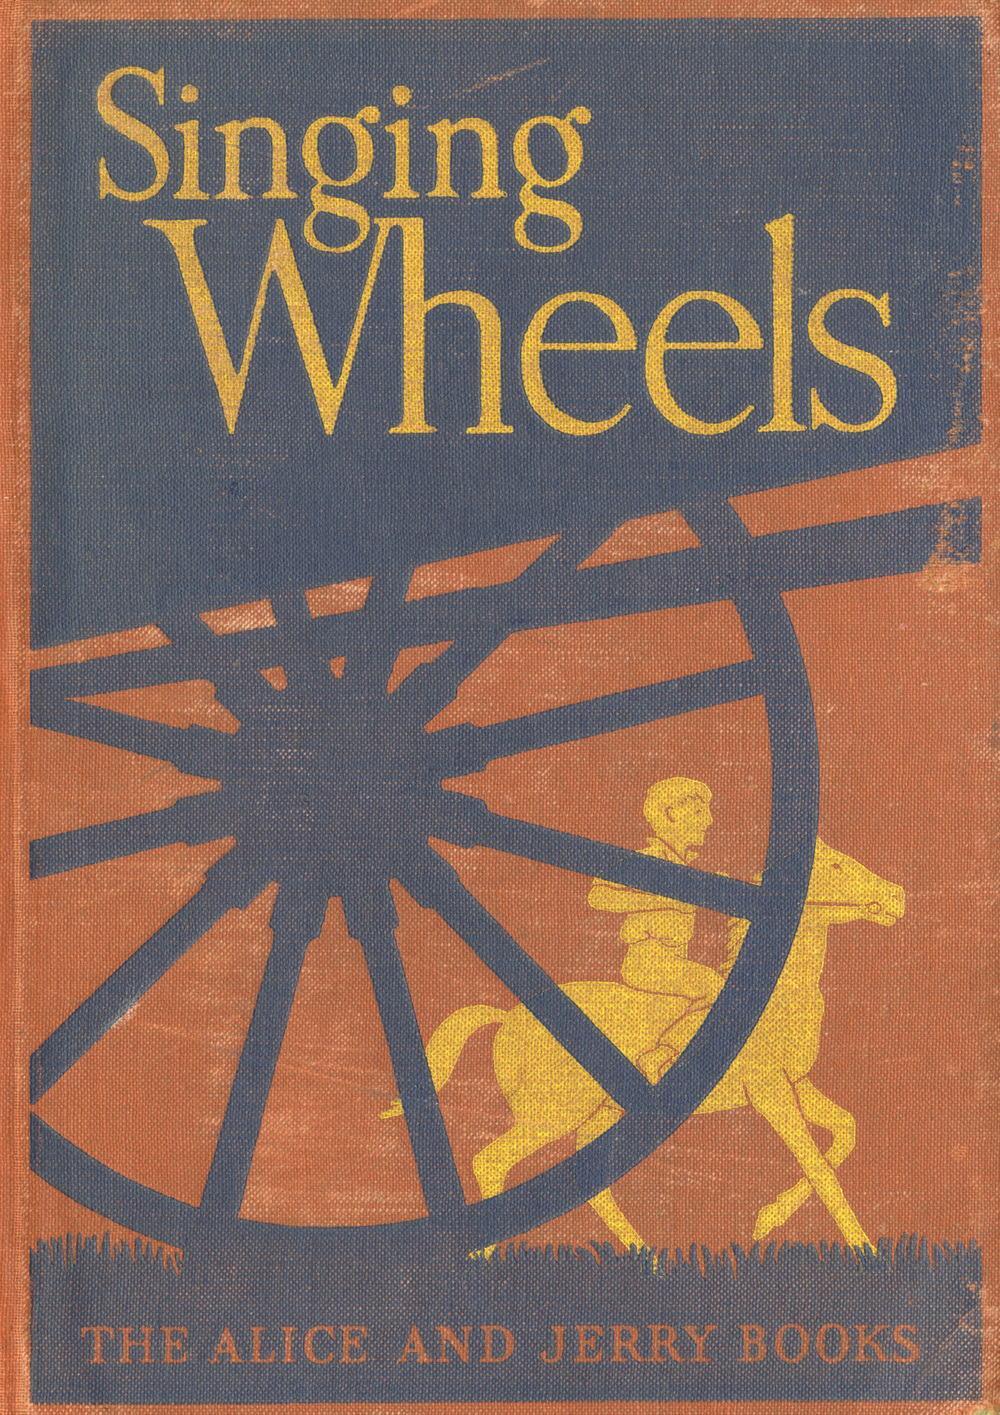 Singing Wheels book cover. Written by Mabel O' Donnell. Published by Row, Peterson and Co, 1940.